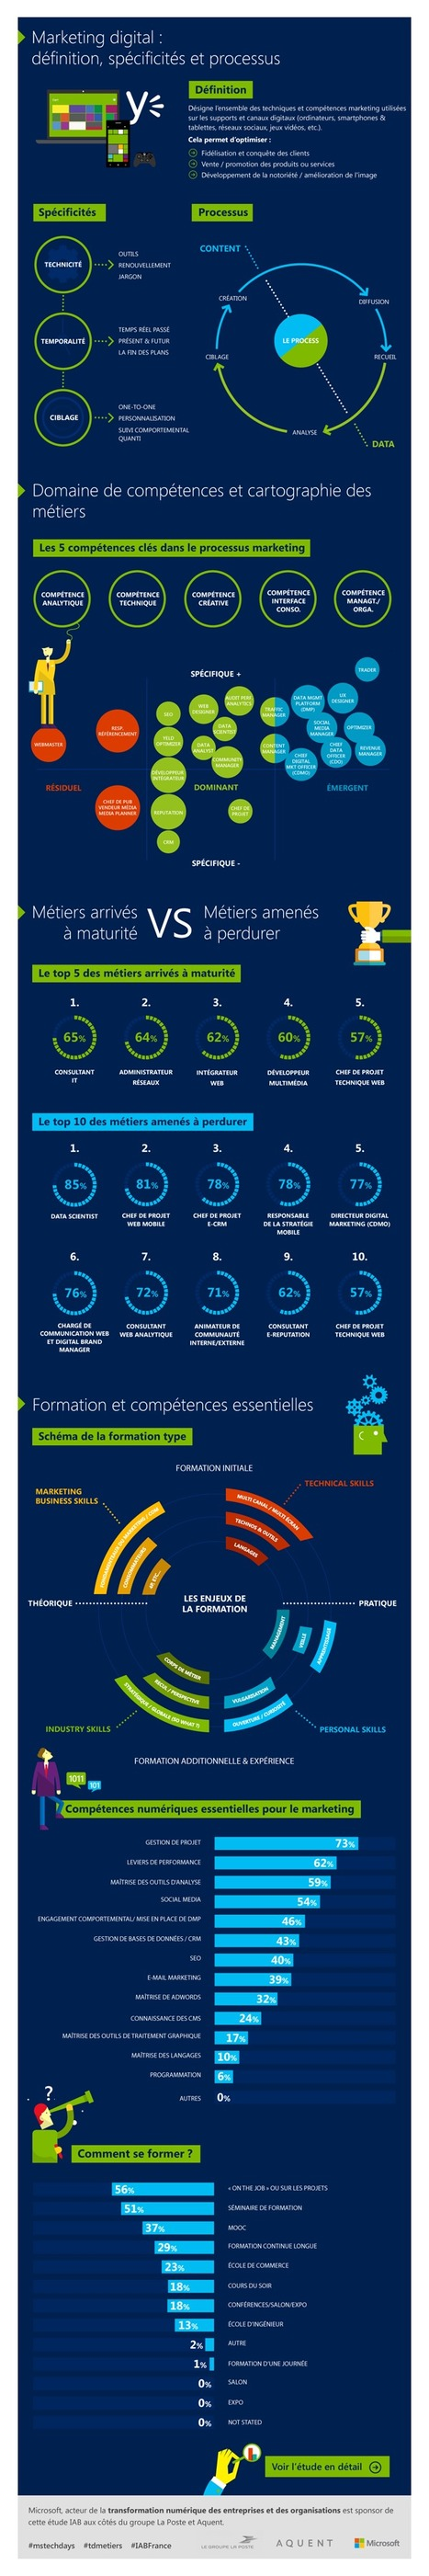 Infographie : Quels sont les nouveaux métiers du digital dans le marketing et la communication ? | State of the media today | Scoop.it